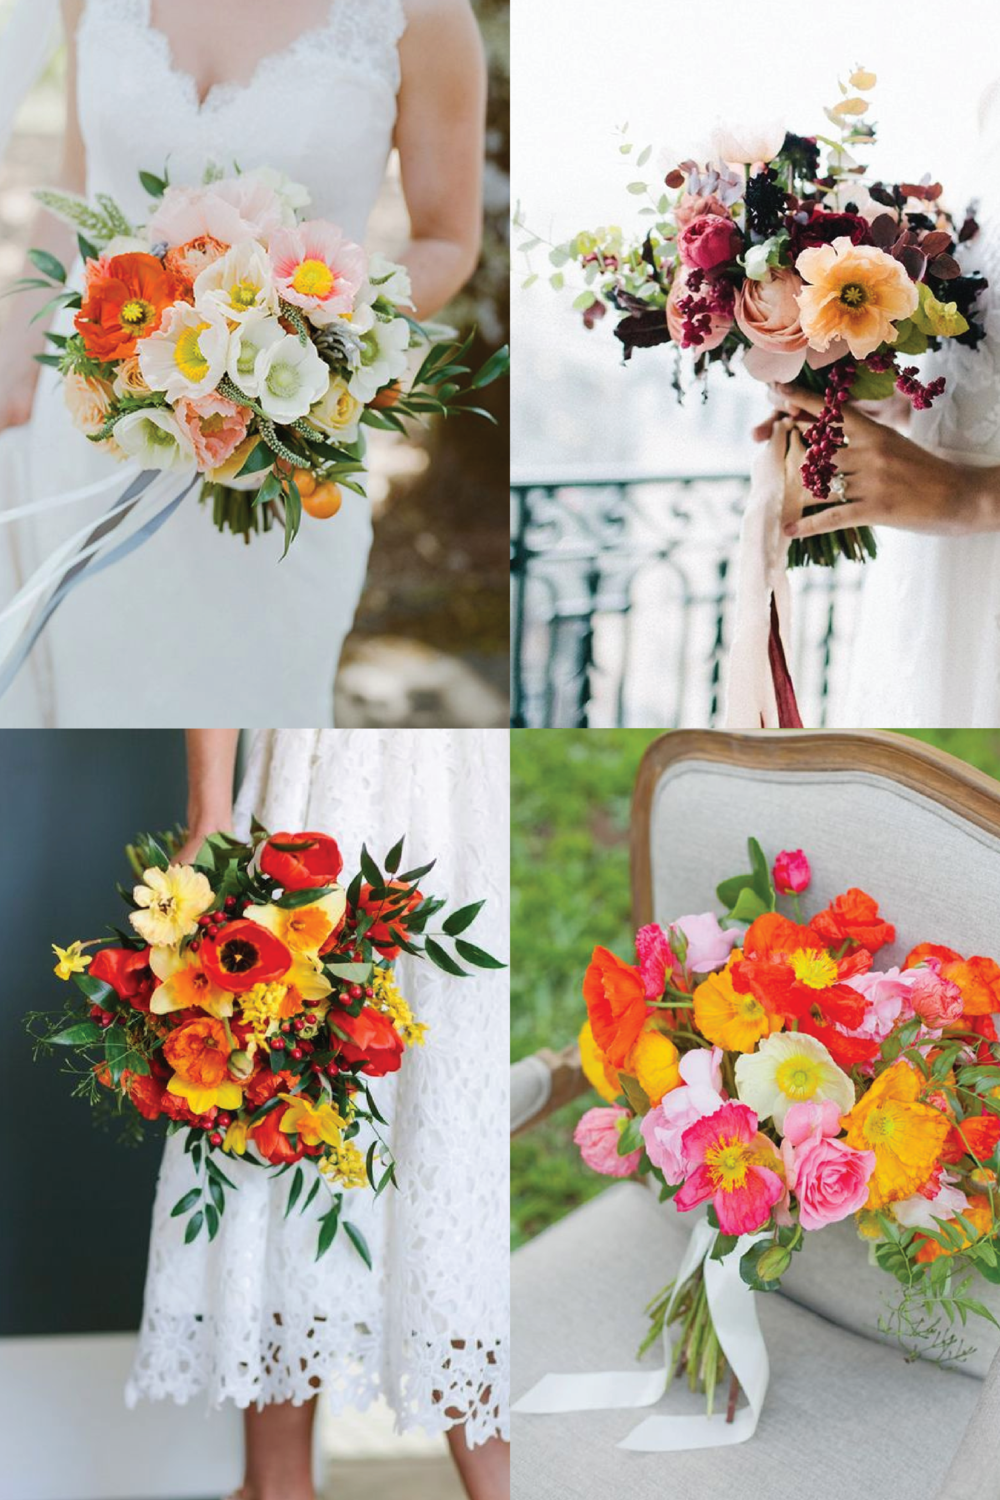 Winter Wedding Flowers 20 Pretty Bridal Bouquets To Lust After